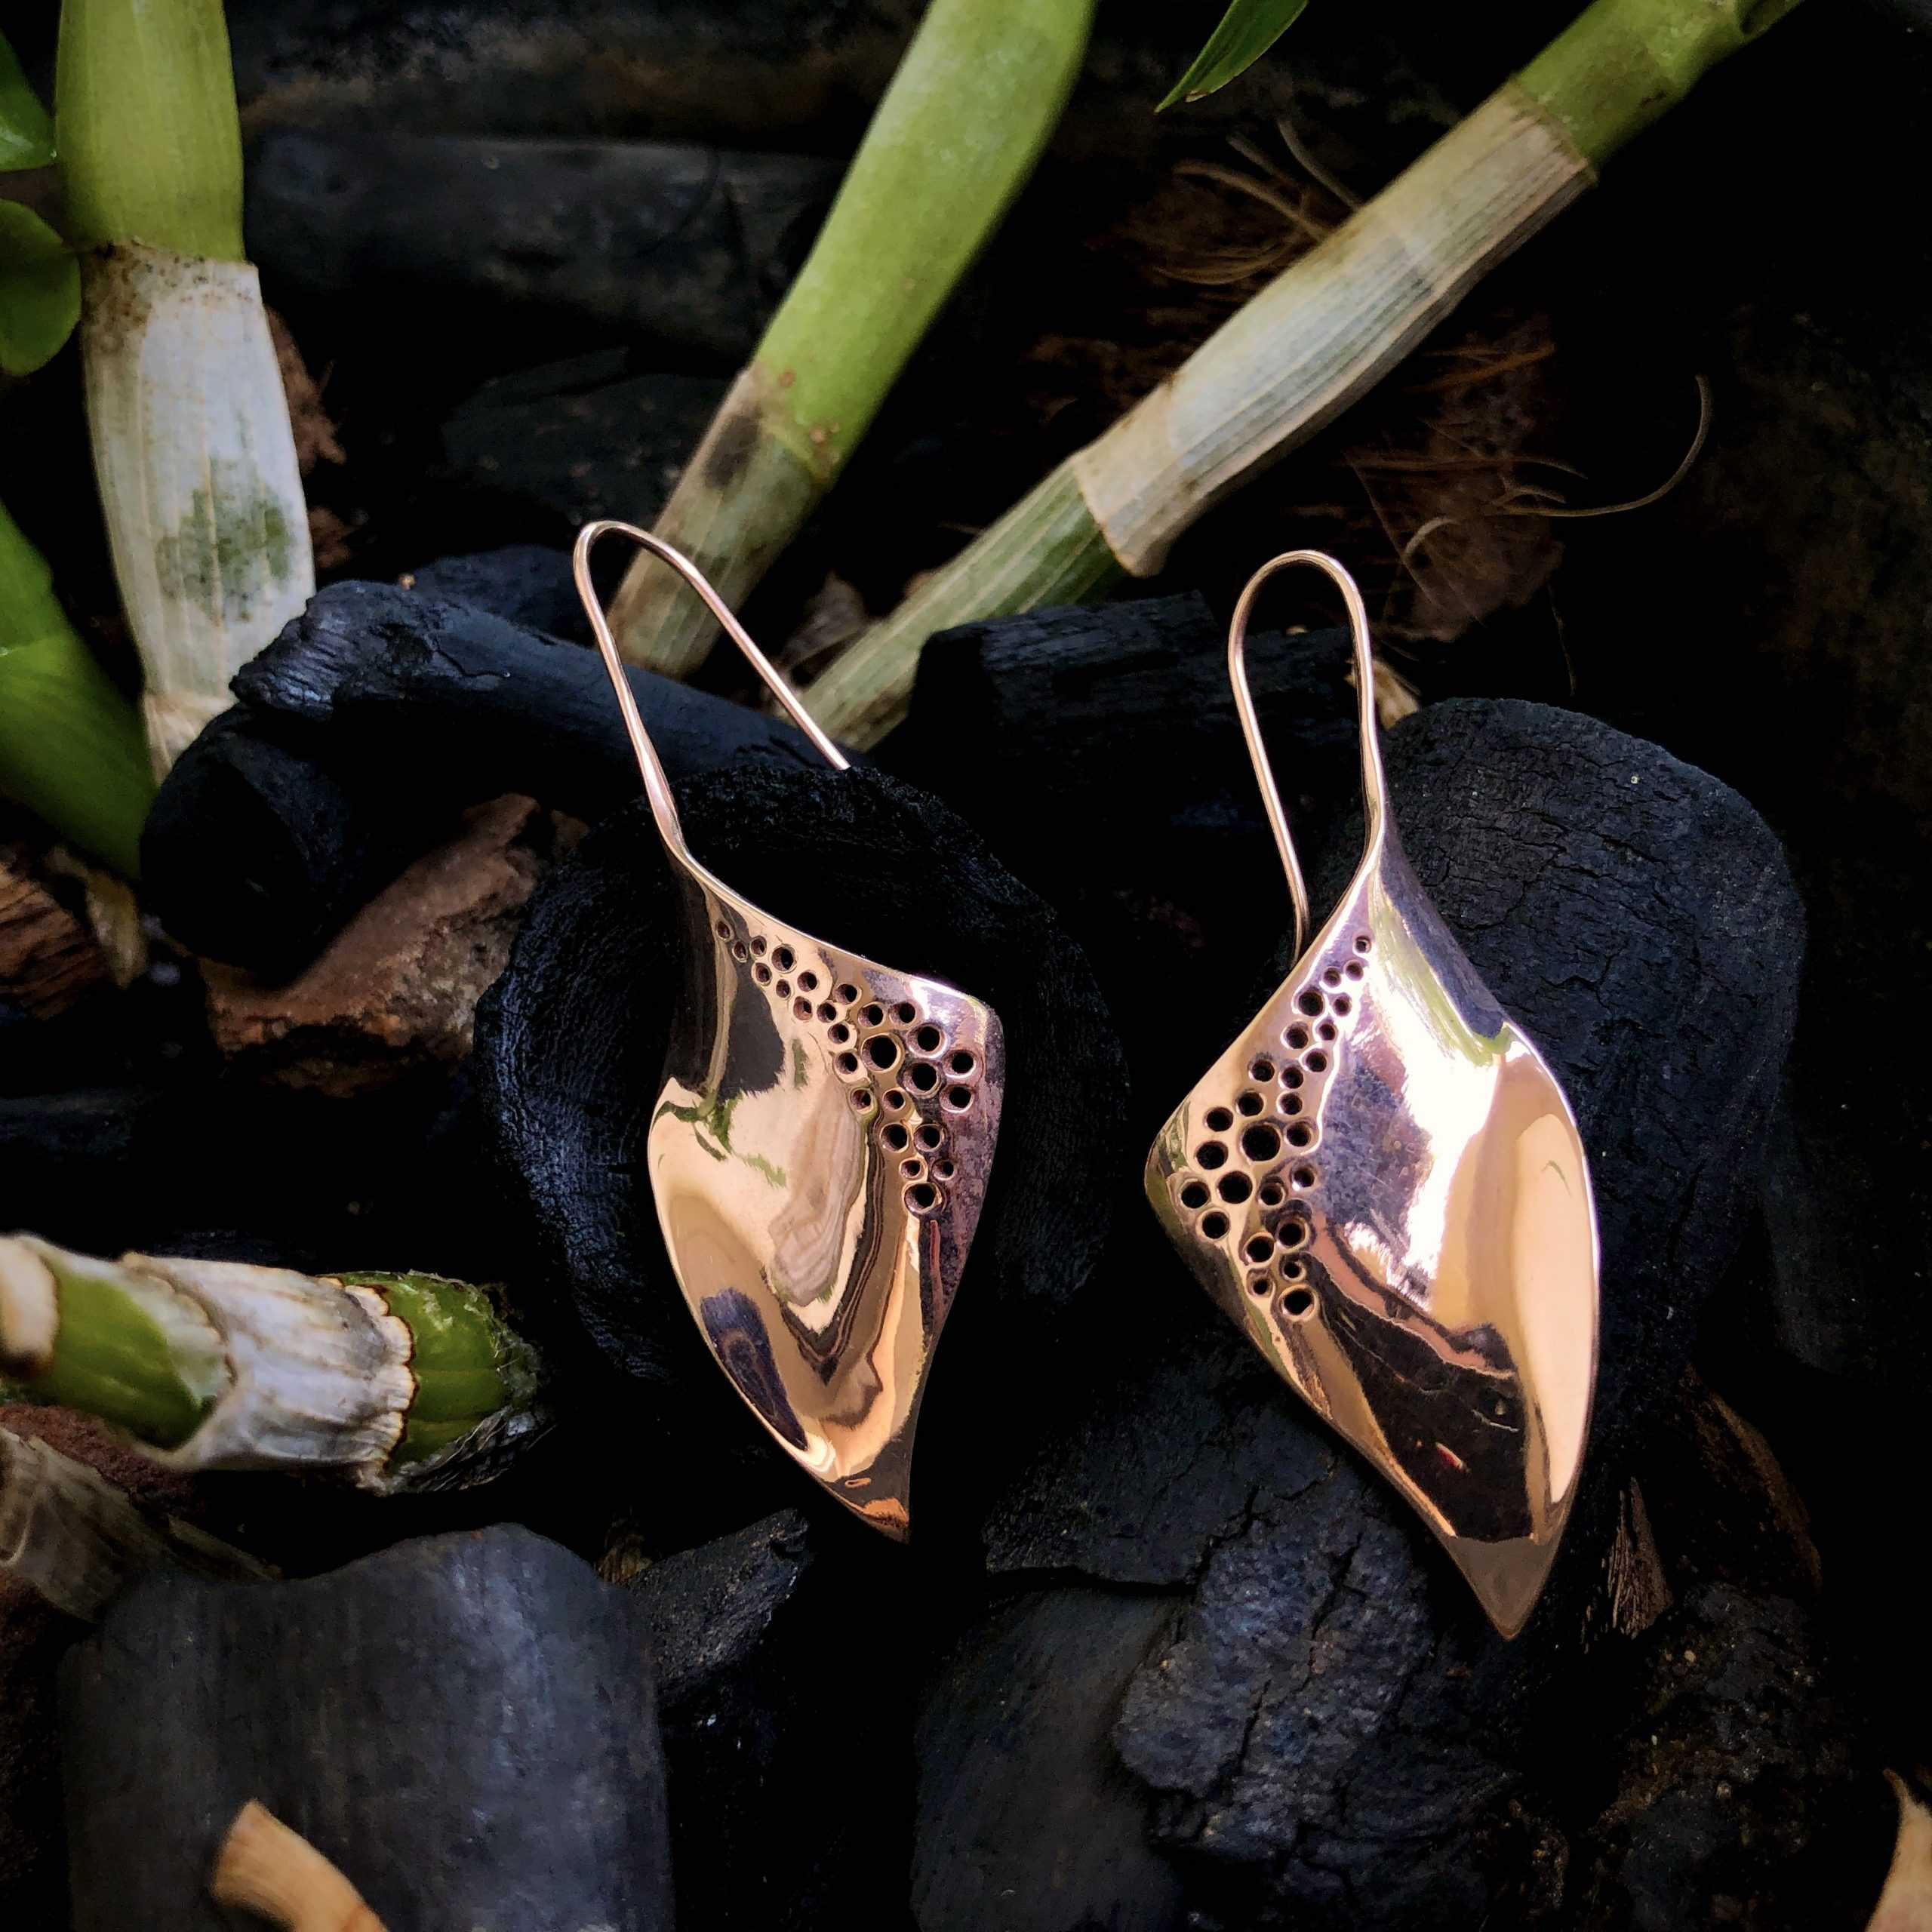 image showing ribelli's Rose gold plated sterling silver earrings with filigree work on a contrasting background of natural items